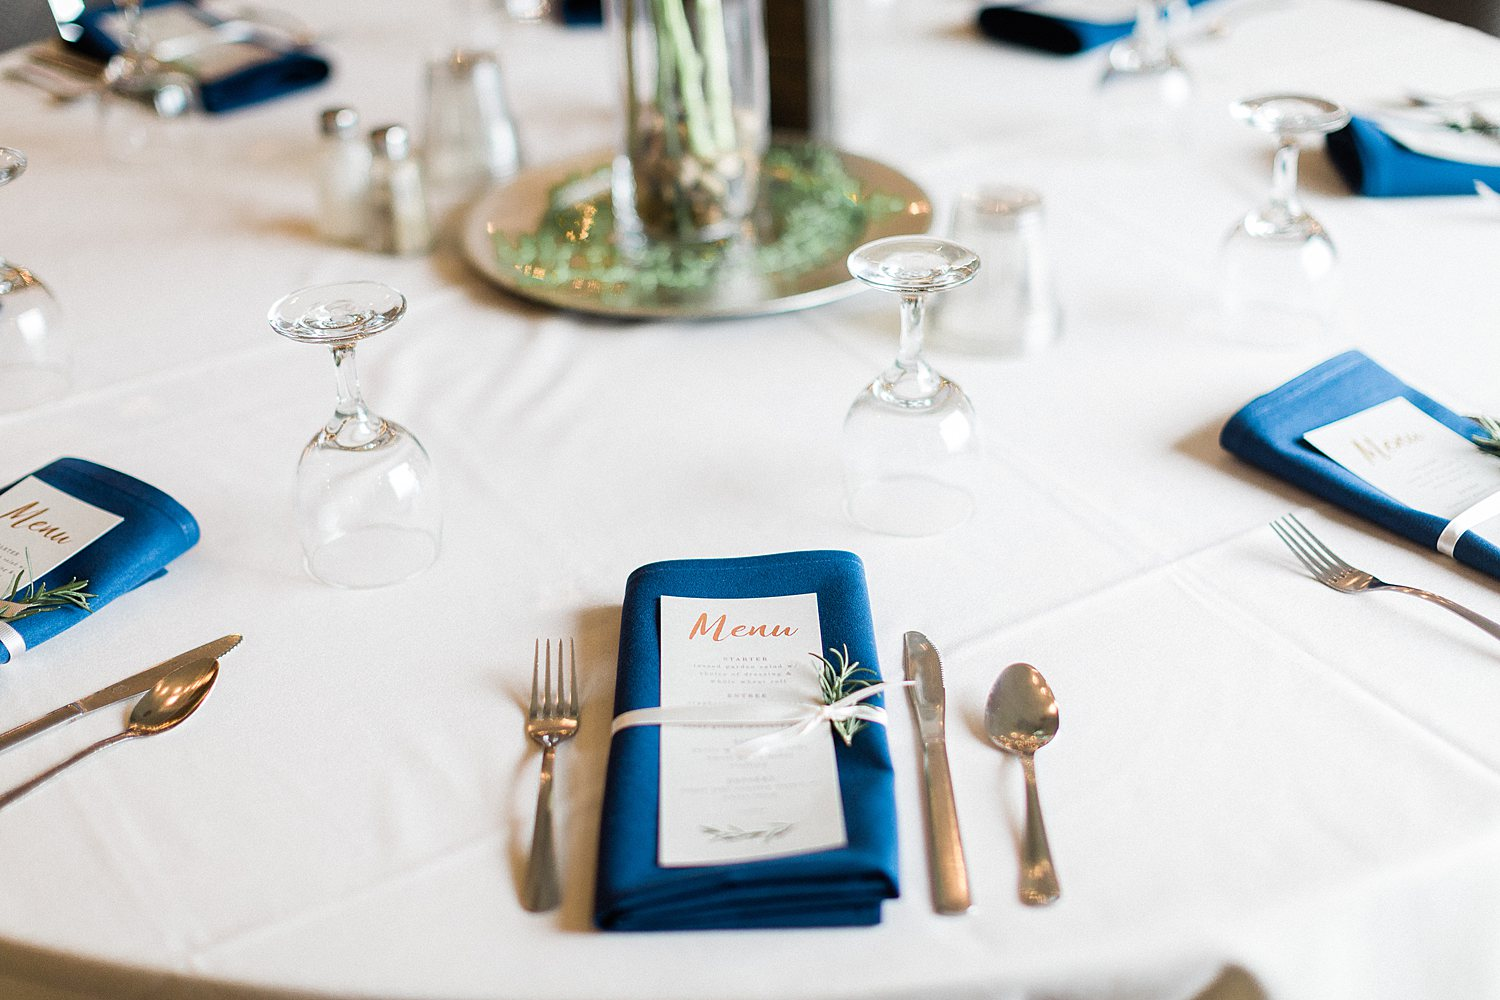 North_Central_Wisconsin_Event_Wedding_Venues_Fall_Weddings_The_Bailiwick_Venue_James-Stokes-Photography045.jpg